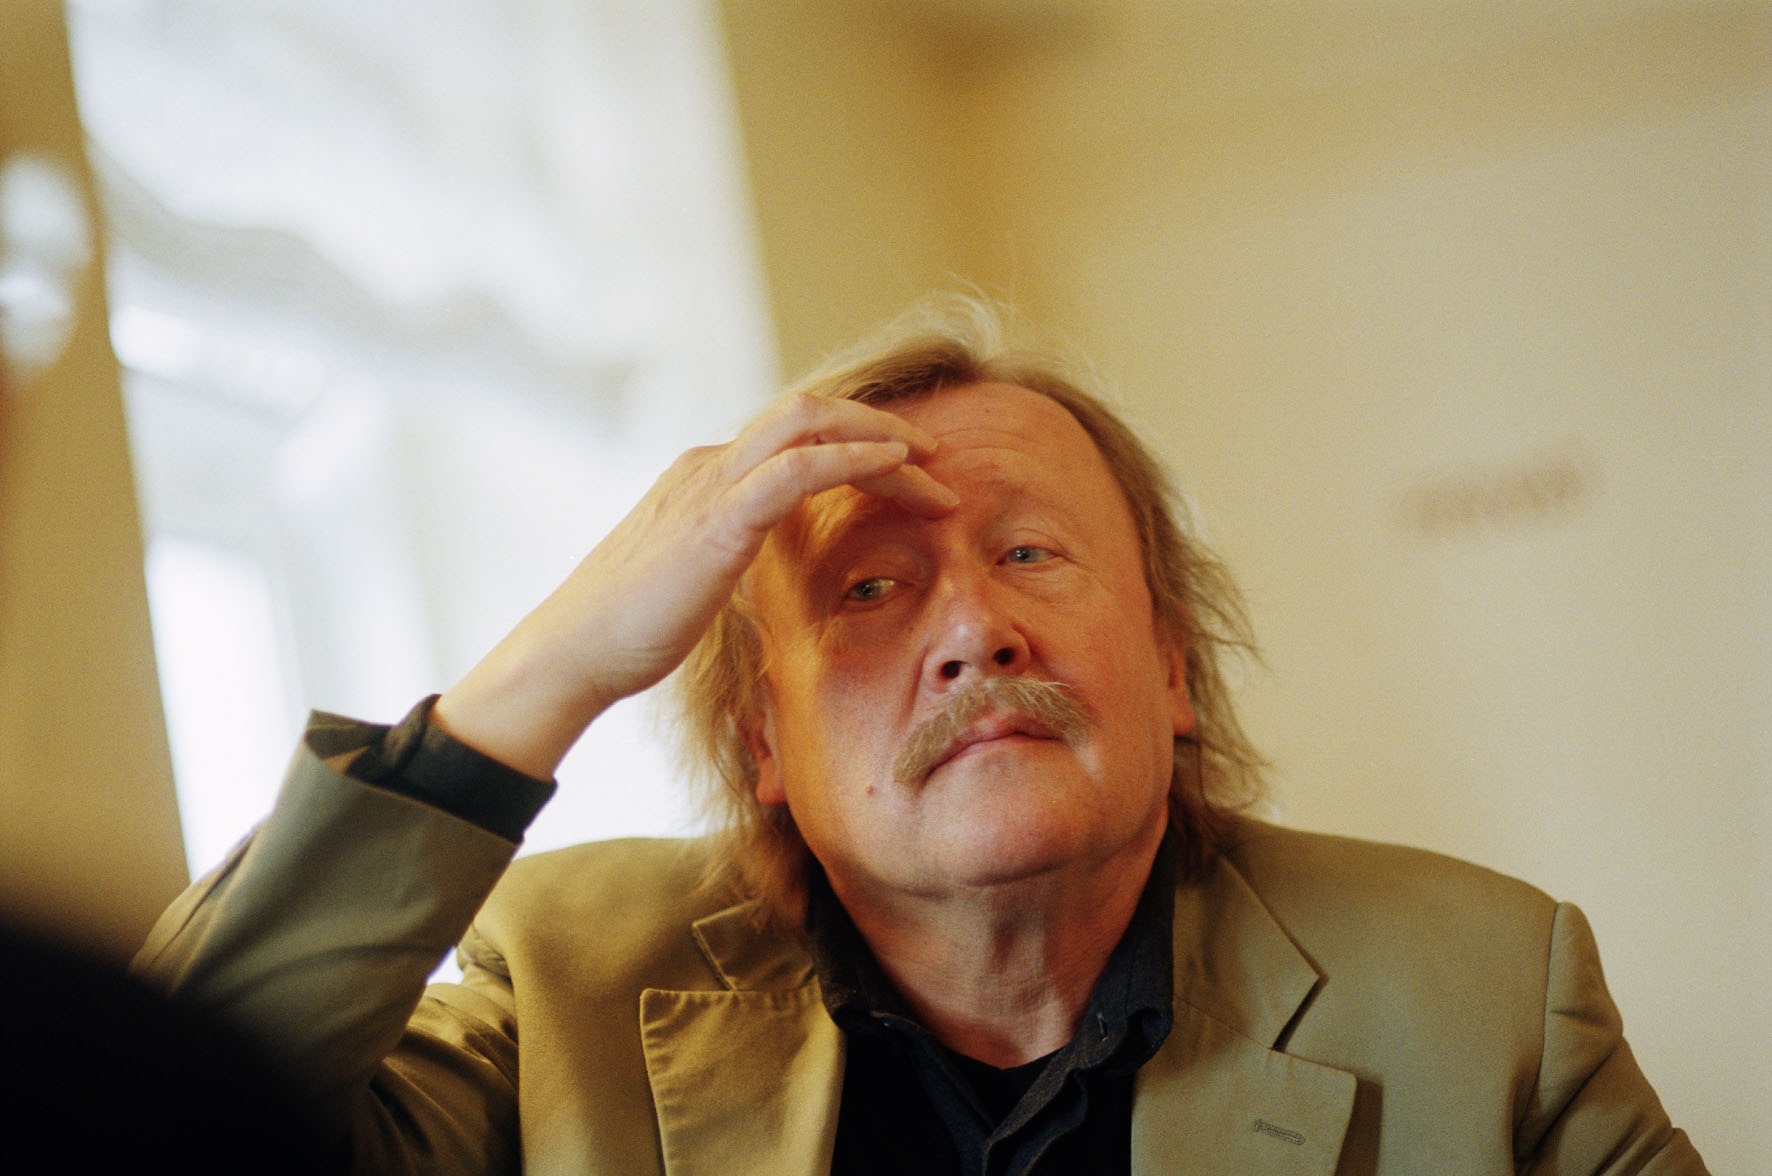 https://i2.wp.com/commons.ch/wp-content/uploads/sloterdijk.jpg